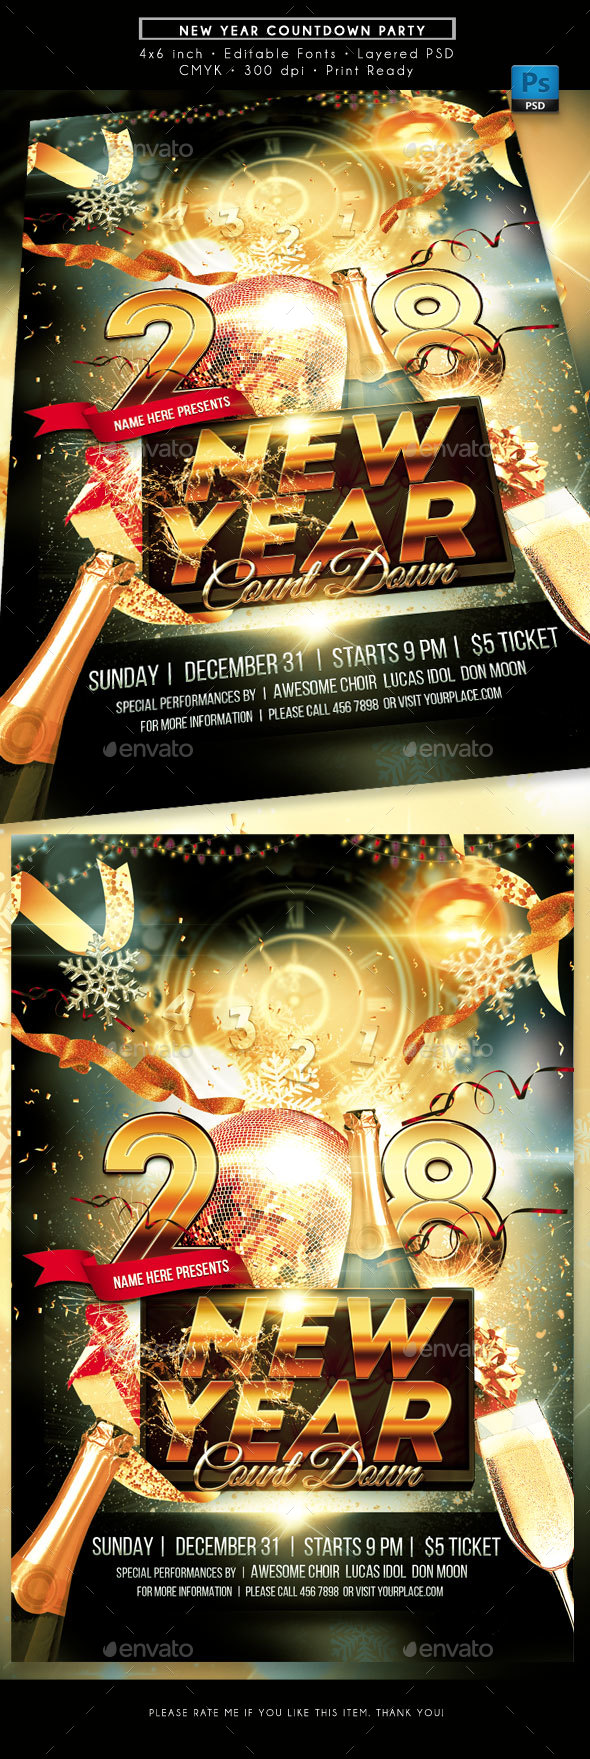 New Year Countdown Party Flyer - Holidays Events